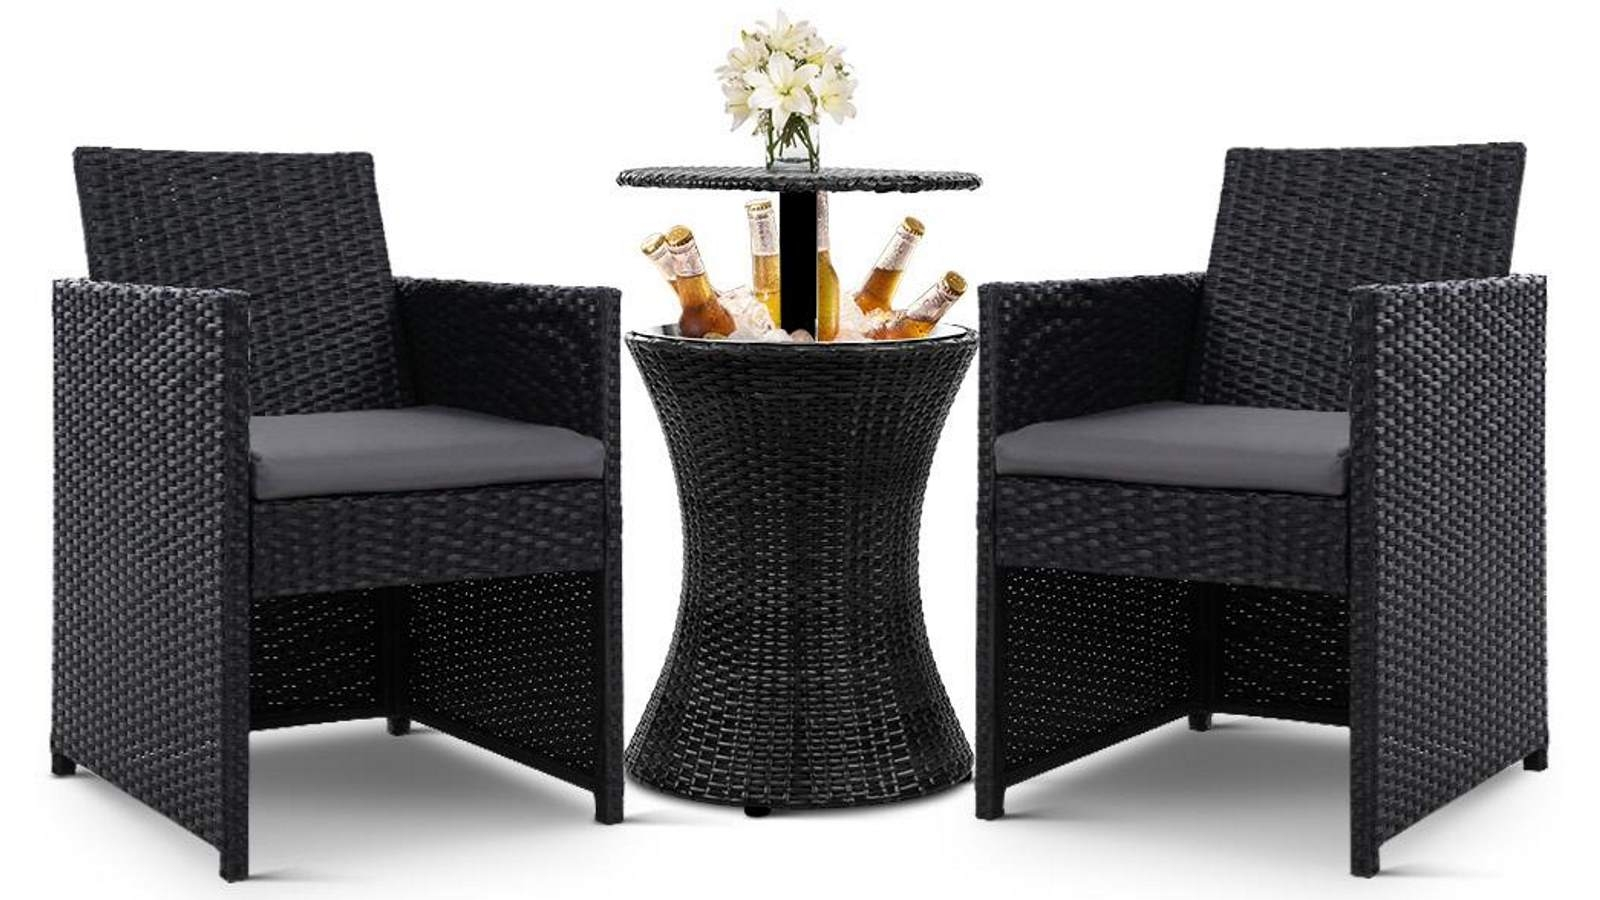 Buy Gardeon Wicker Outdoor Bar Table Set Black Harvey Norman Au